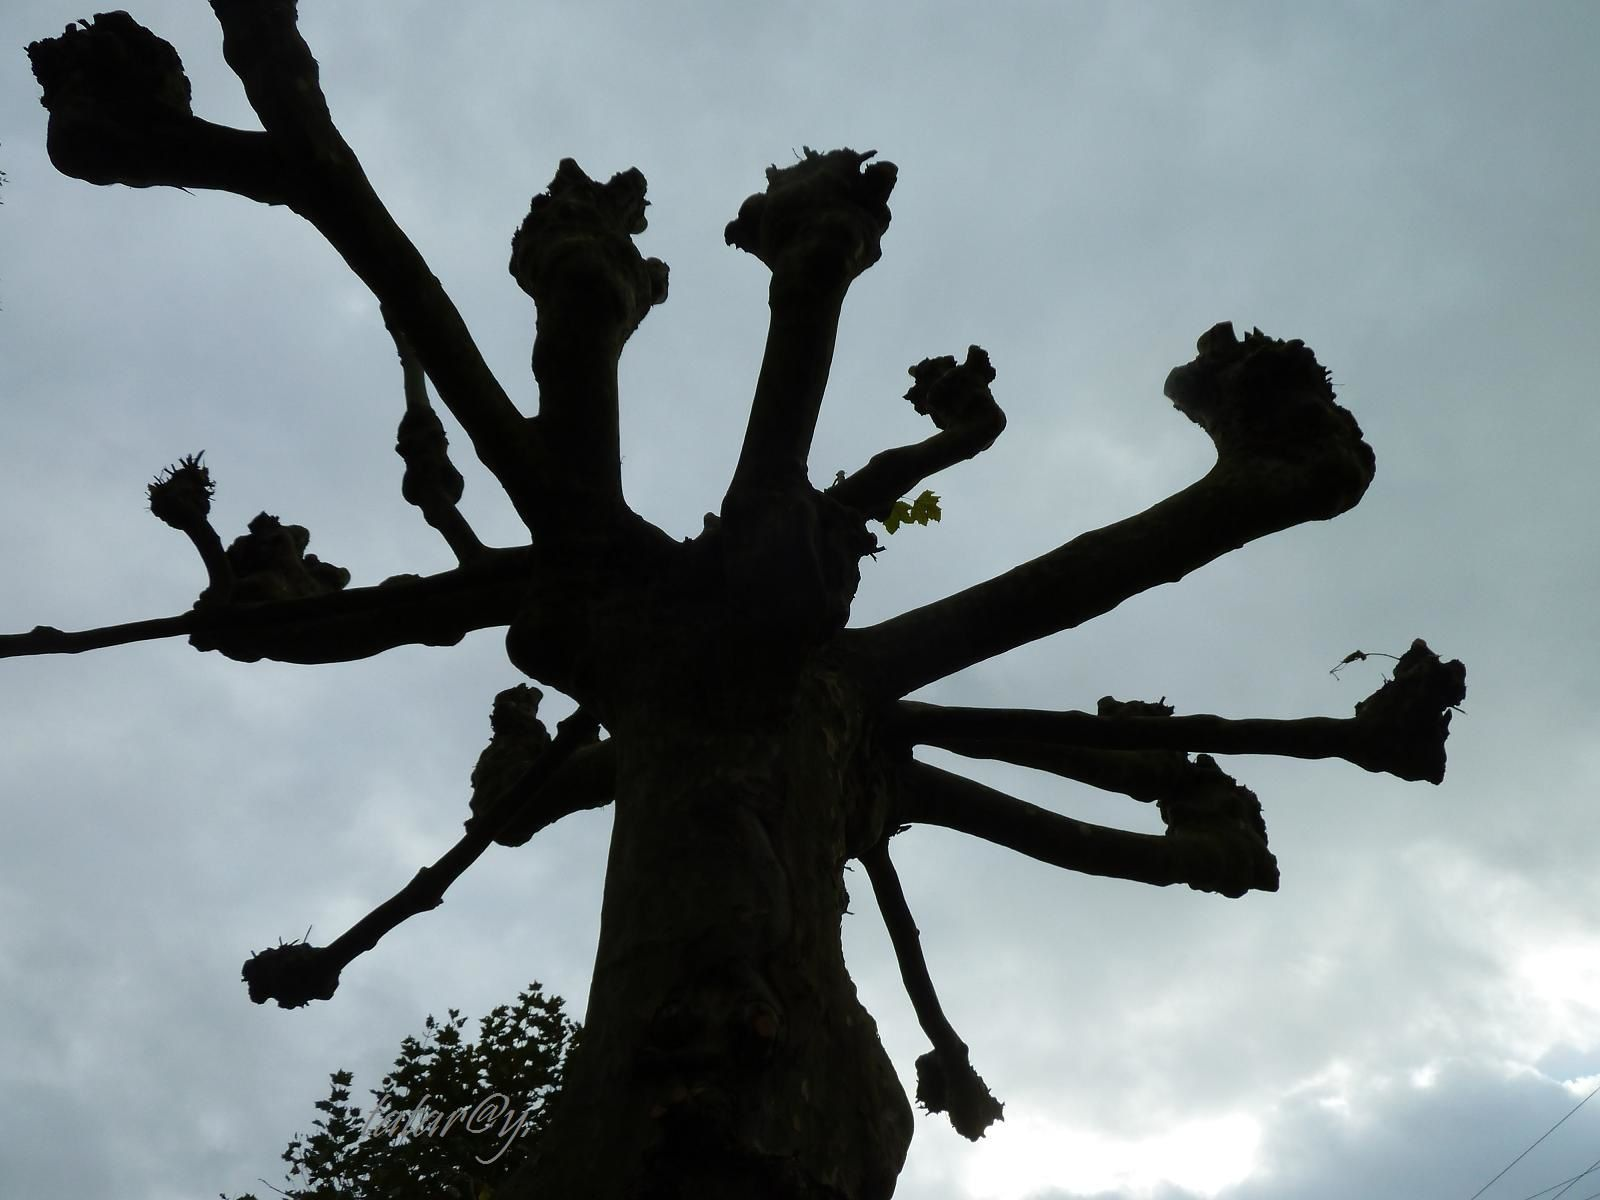 tataray_arbre2_photo